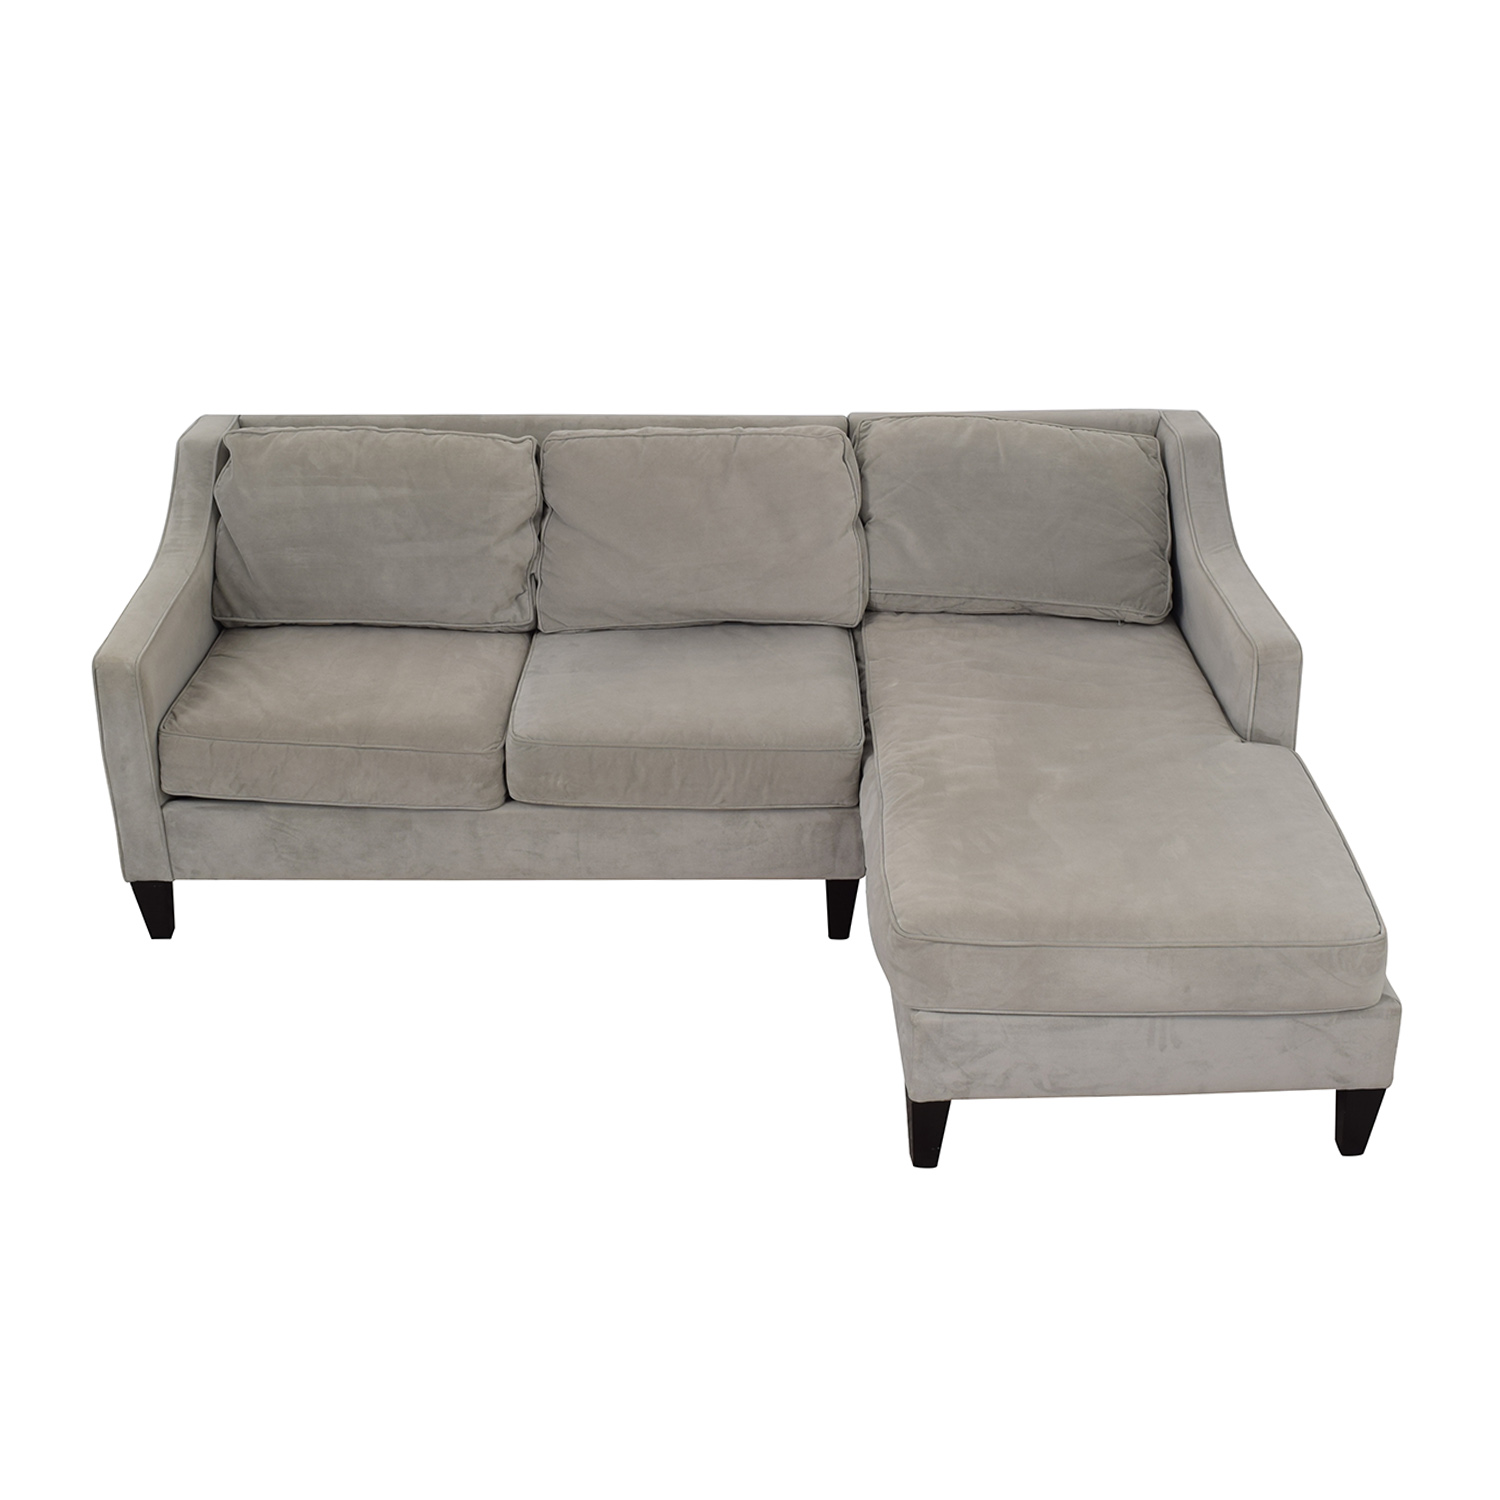 West Elm West Elm Paige Grey Chaise Sectional price